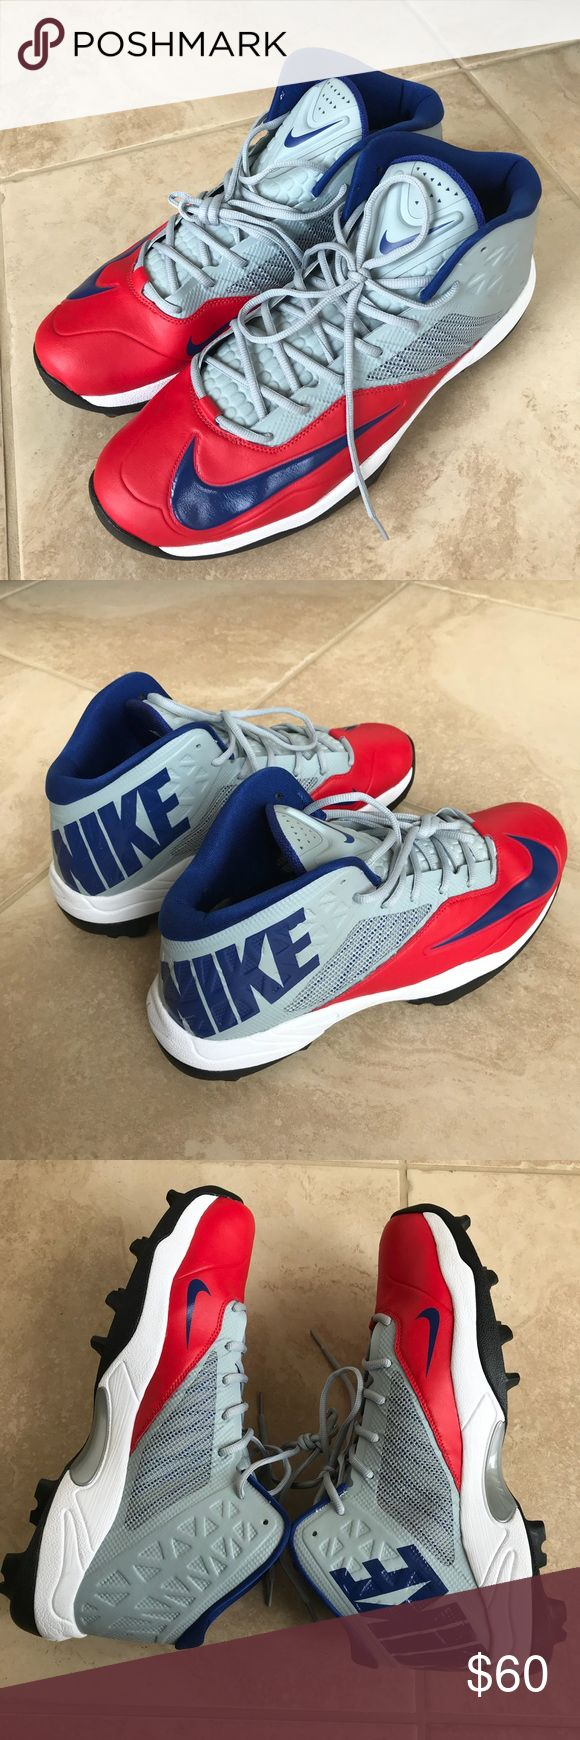 Nike High Top Football Cleats/Sneakers Brand new without box Nike Shoes Athletic Shoes